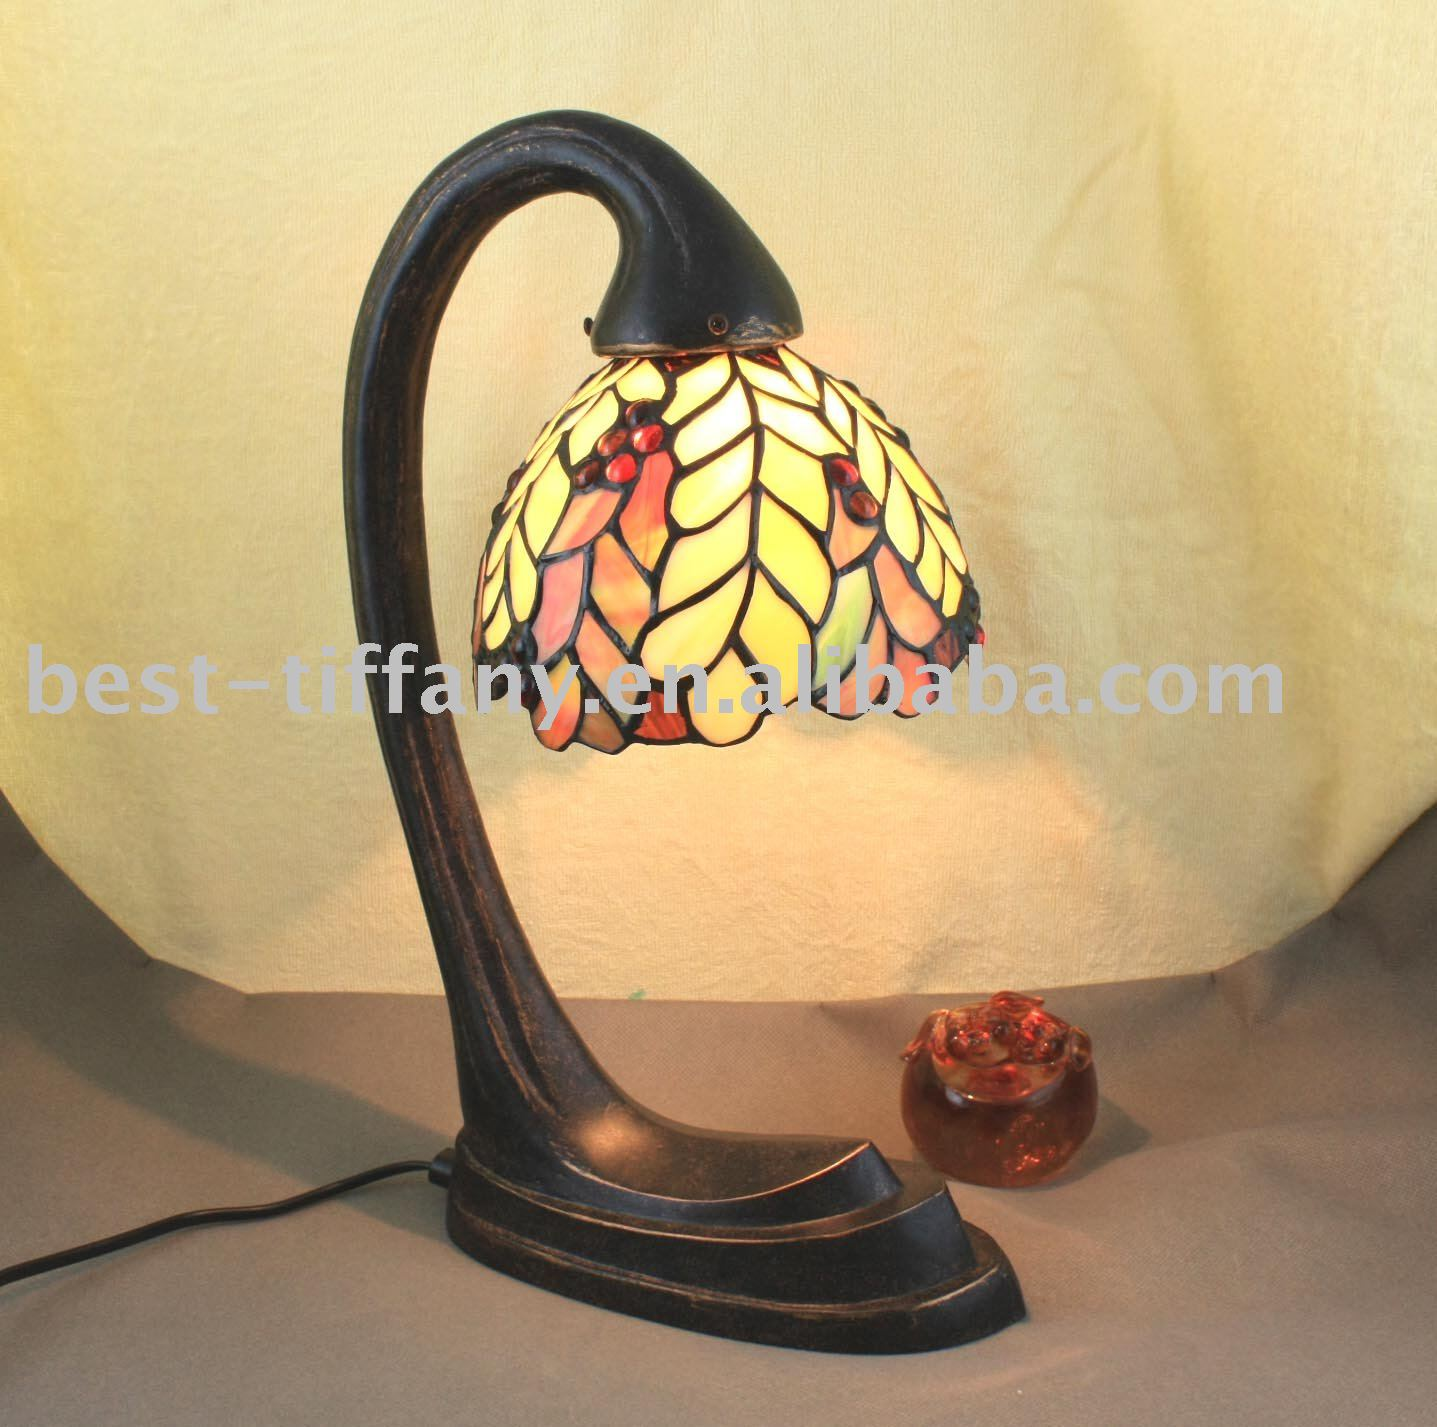 Tiffany table lamp (TL-B0768B)